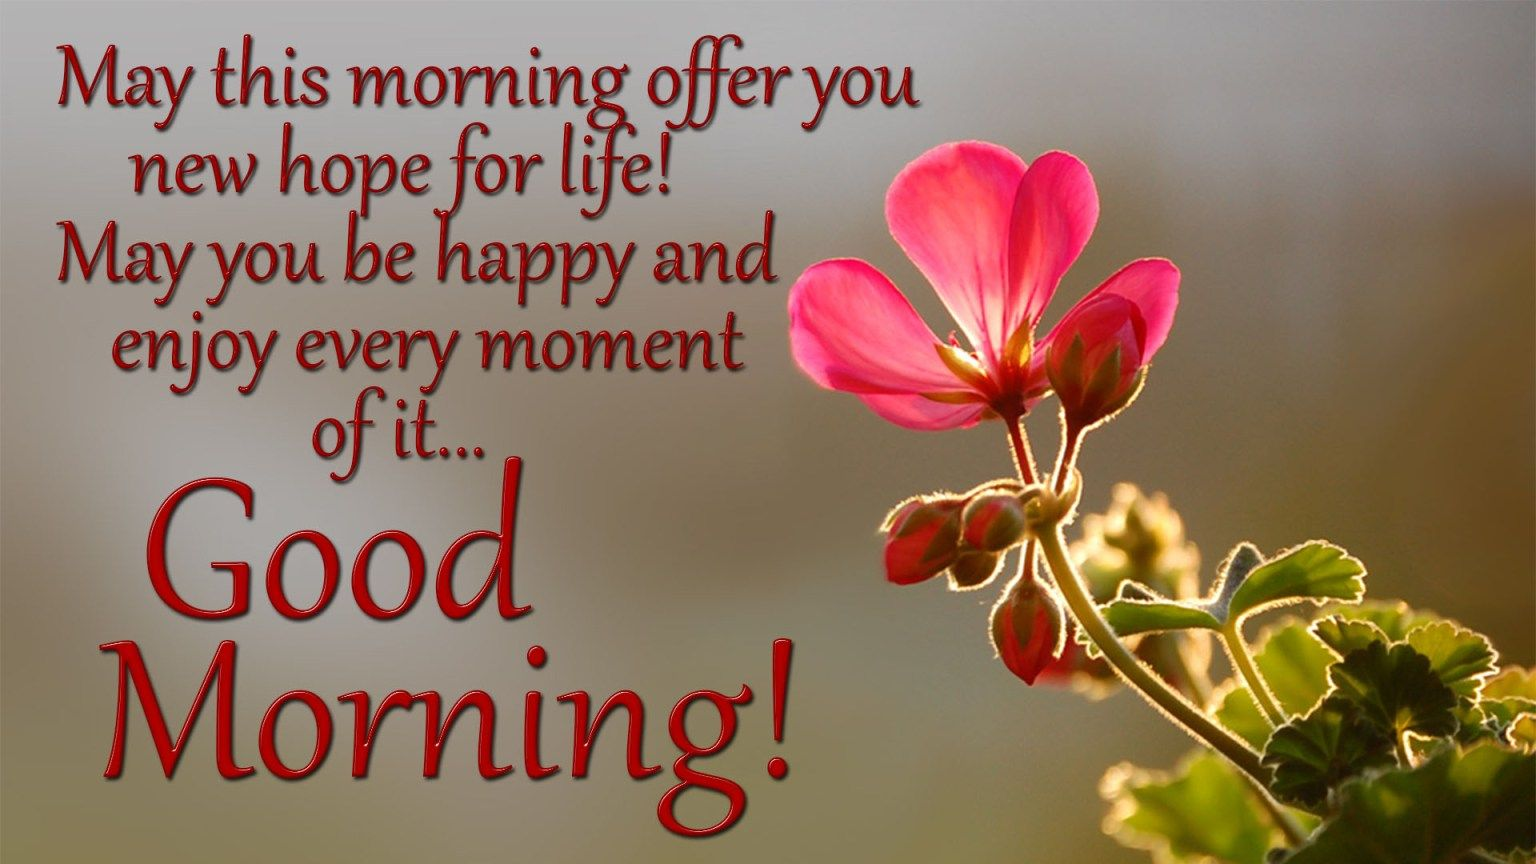 100 Beautiful Good Morning Quotes Wishes Messages 2020 Good Morning Quotes Morning Quotes Happy Quotes Smile